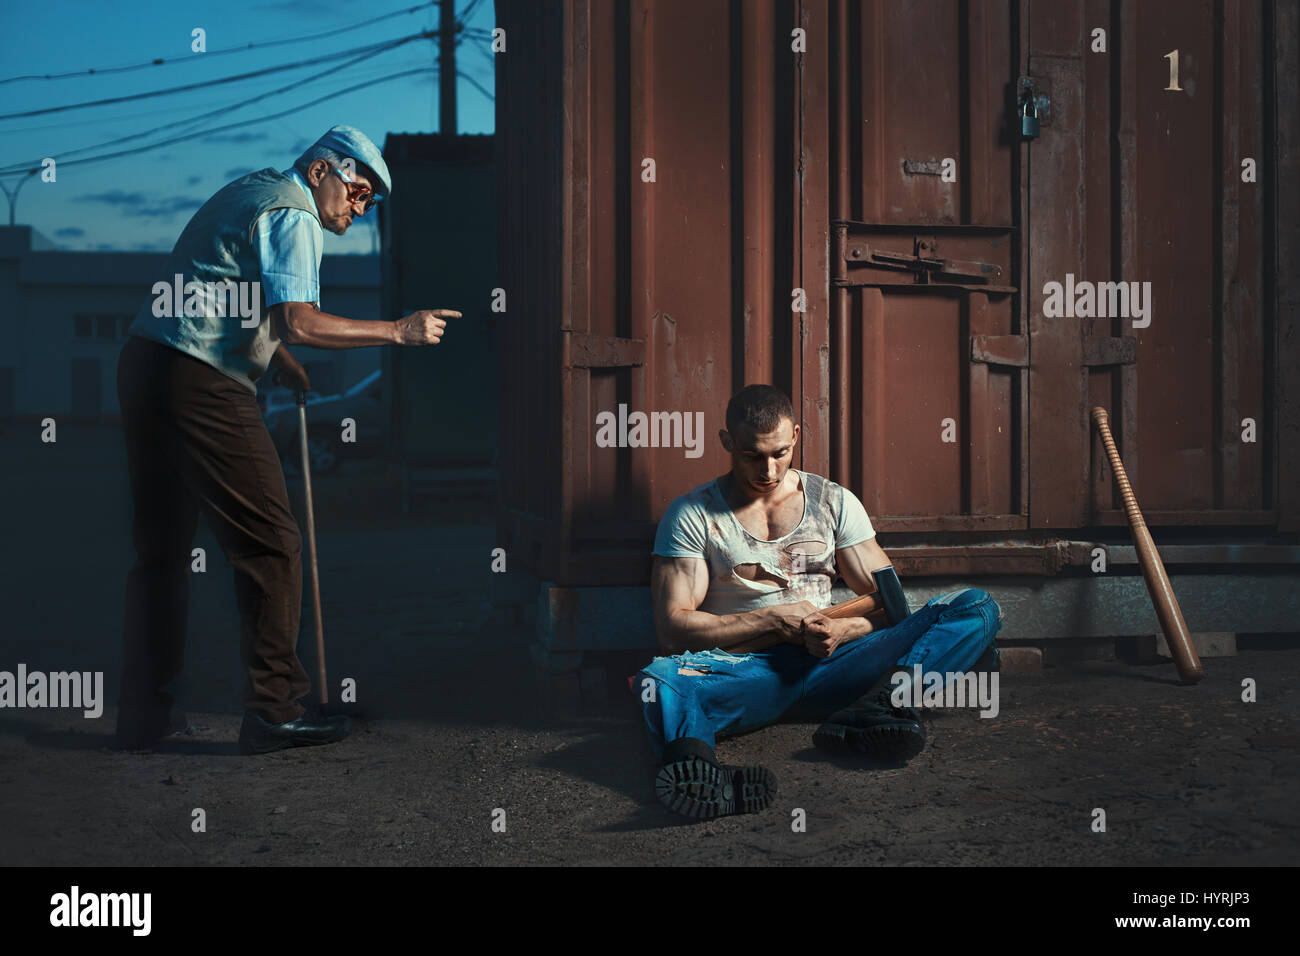 Old man in the street at night hit extortionists. - Stock Image